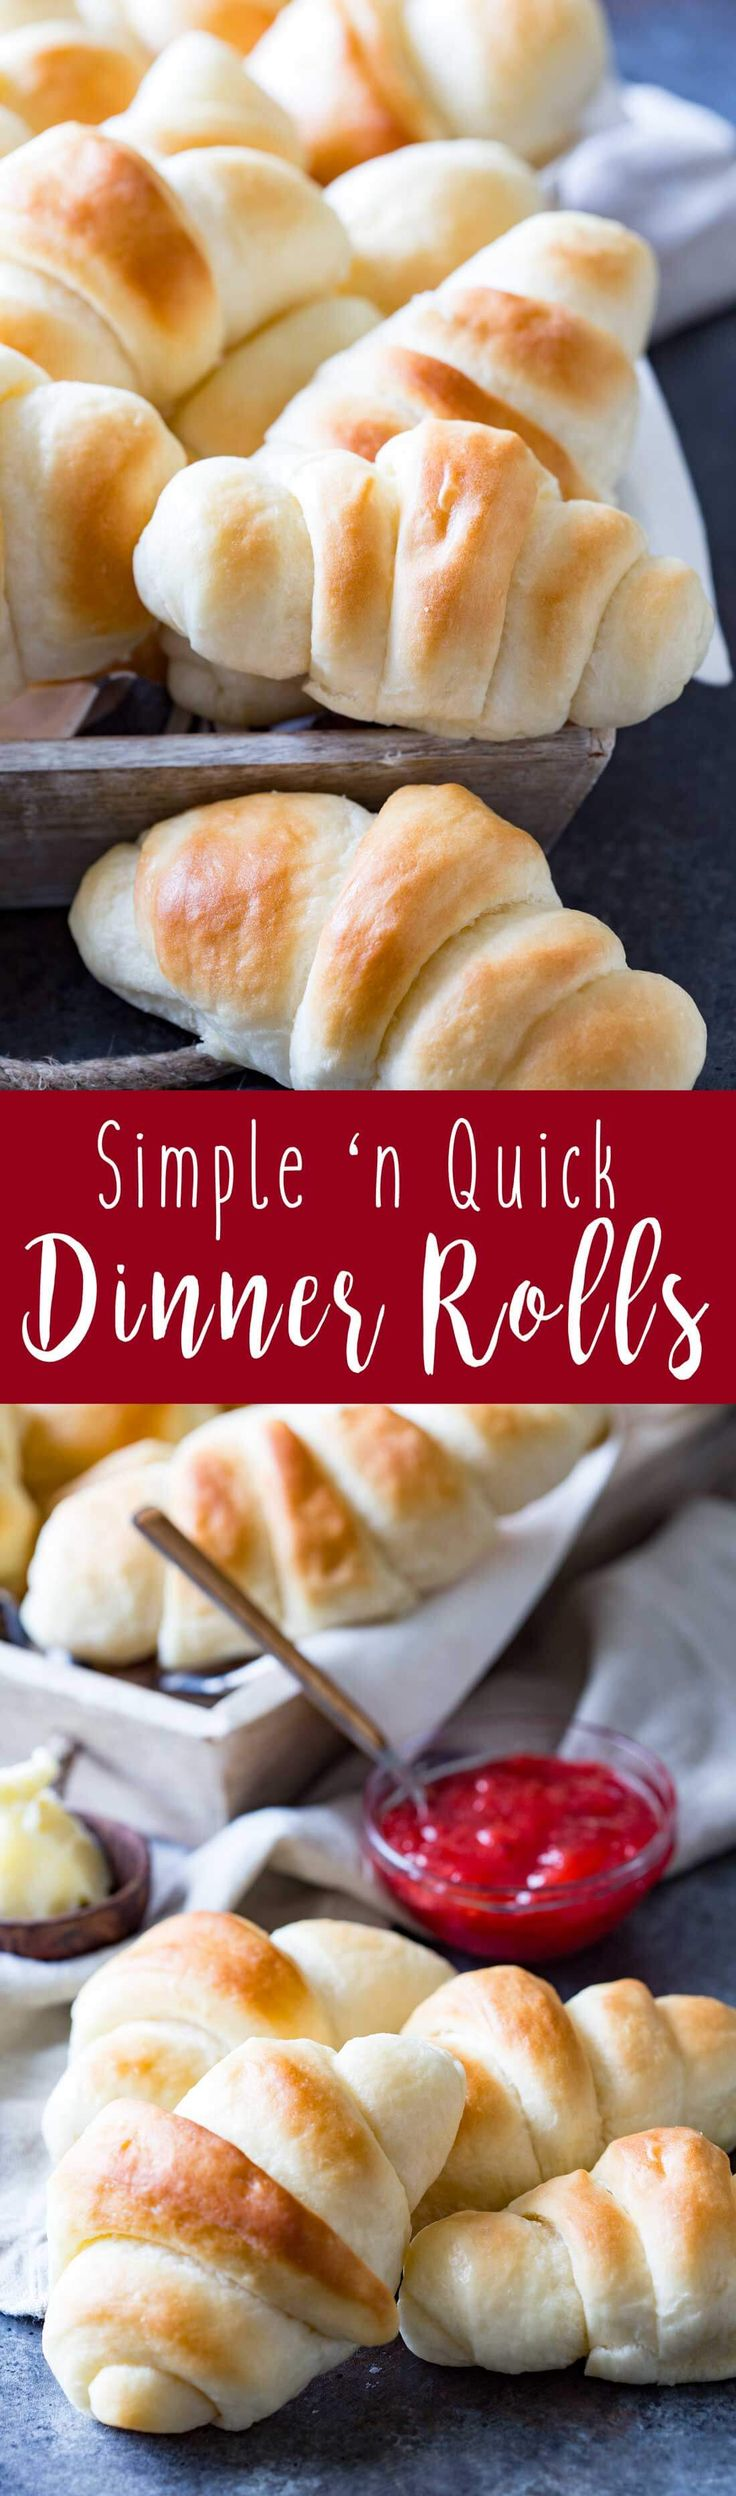 Simple and Quick Dinner Rolls